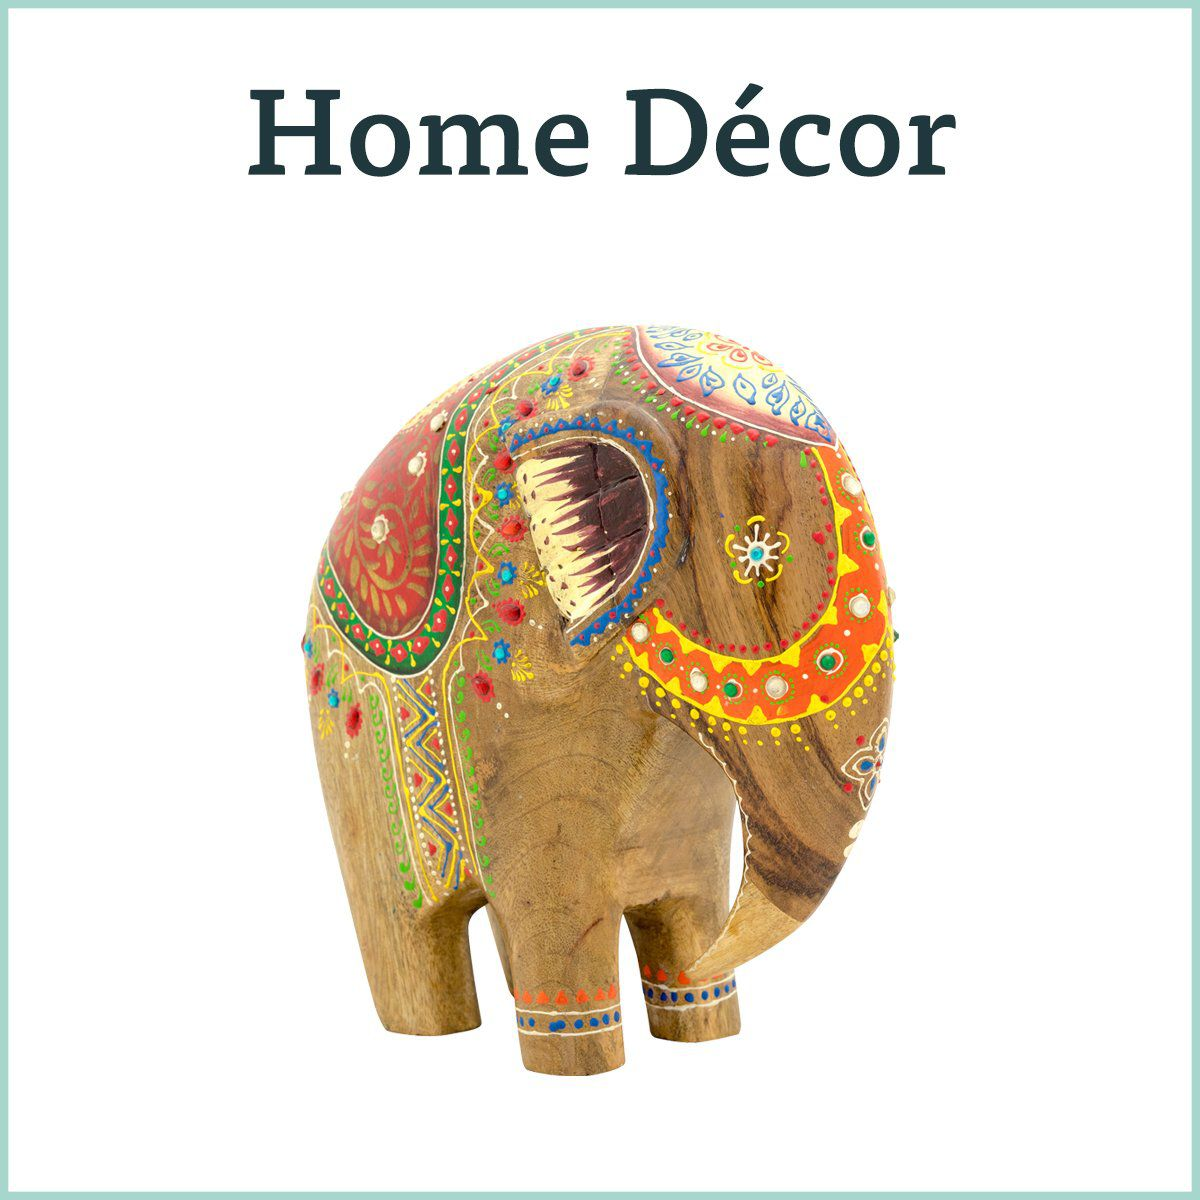 Home Decor Clearance